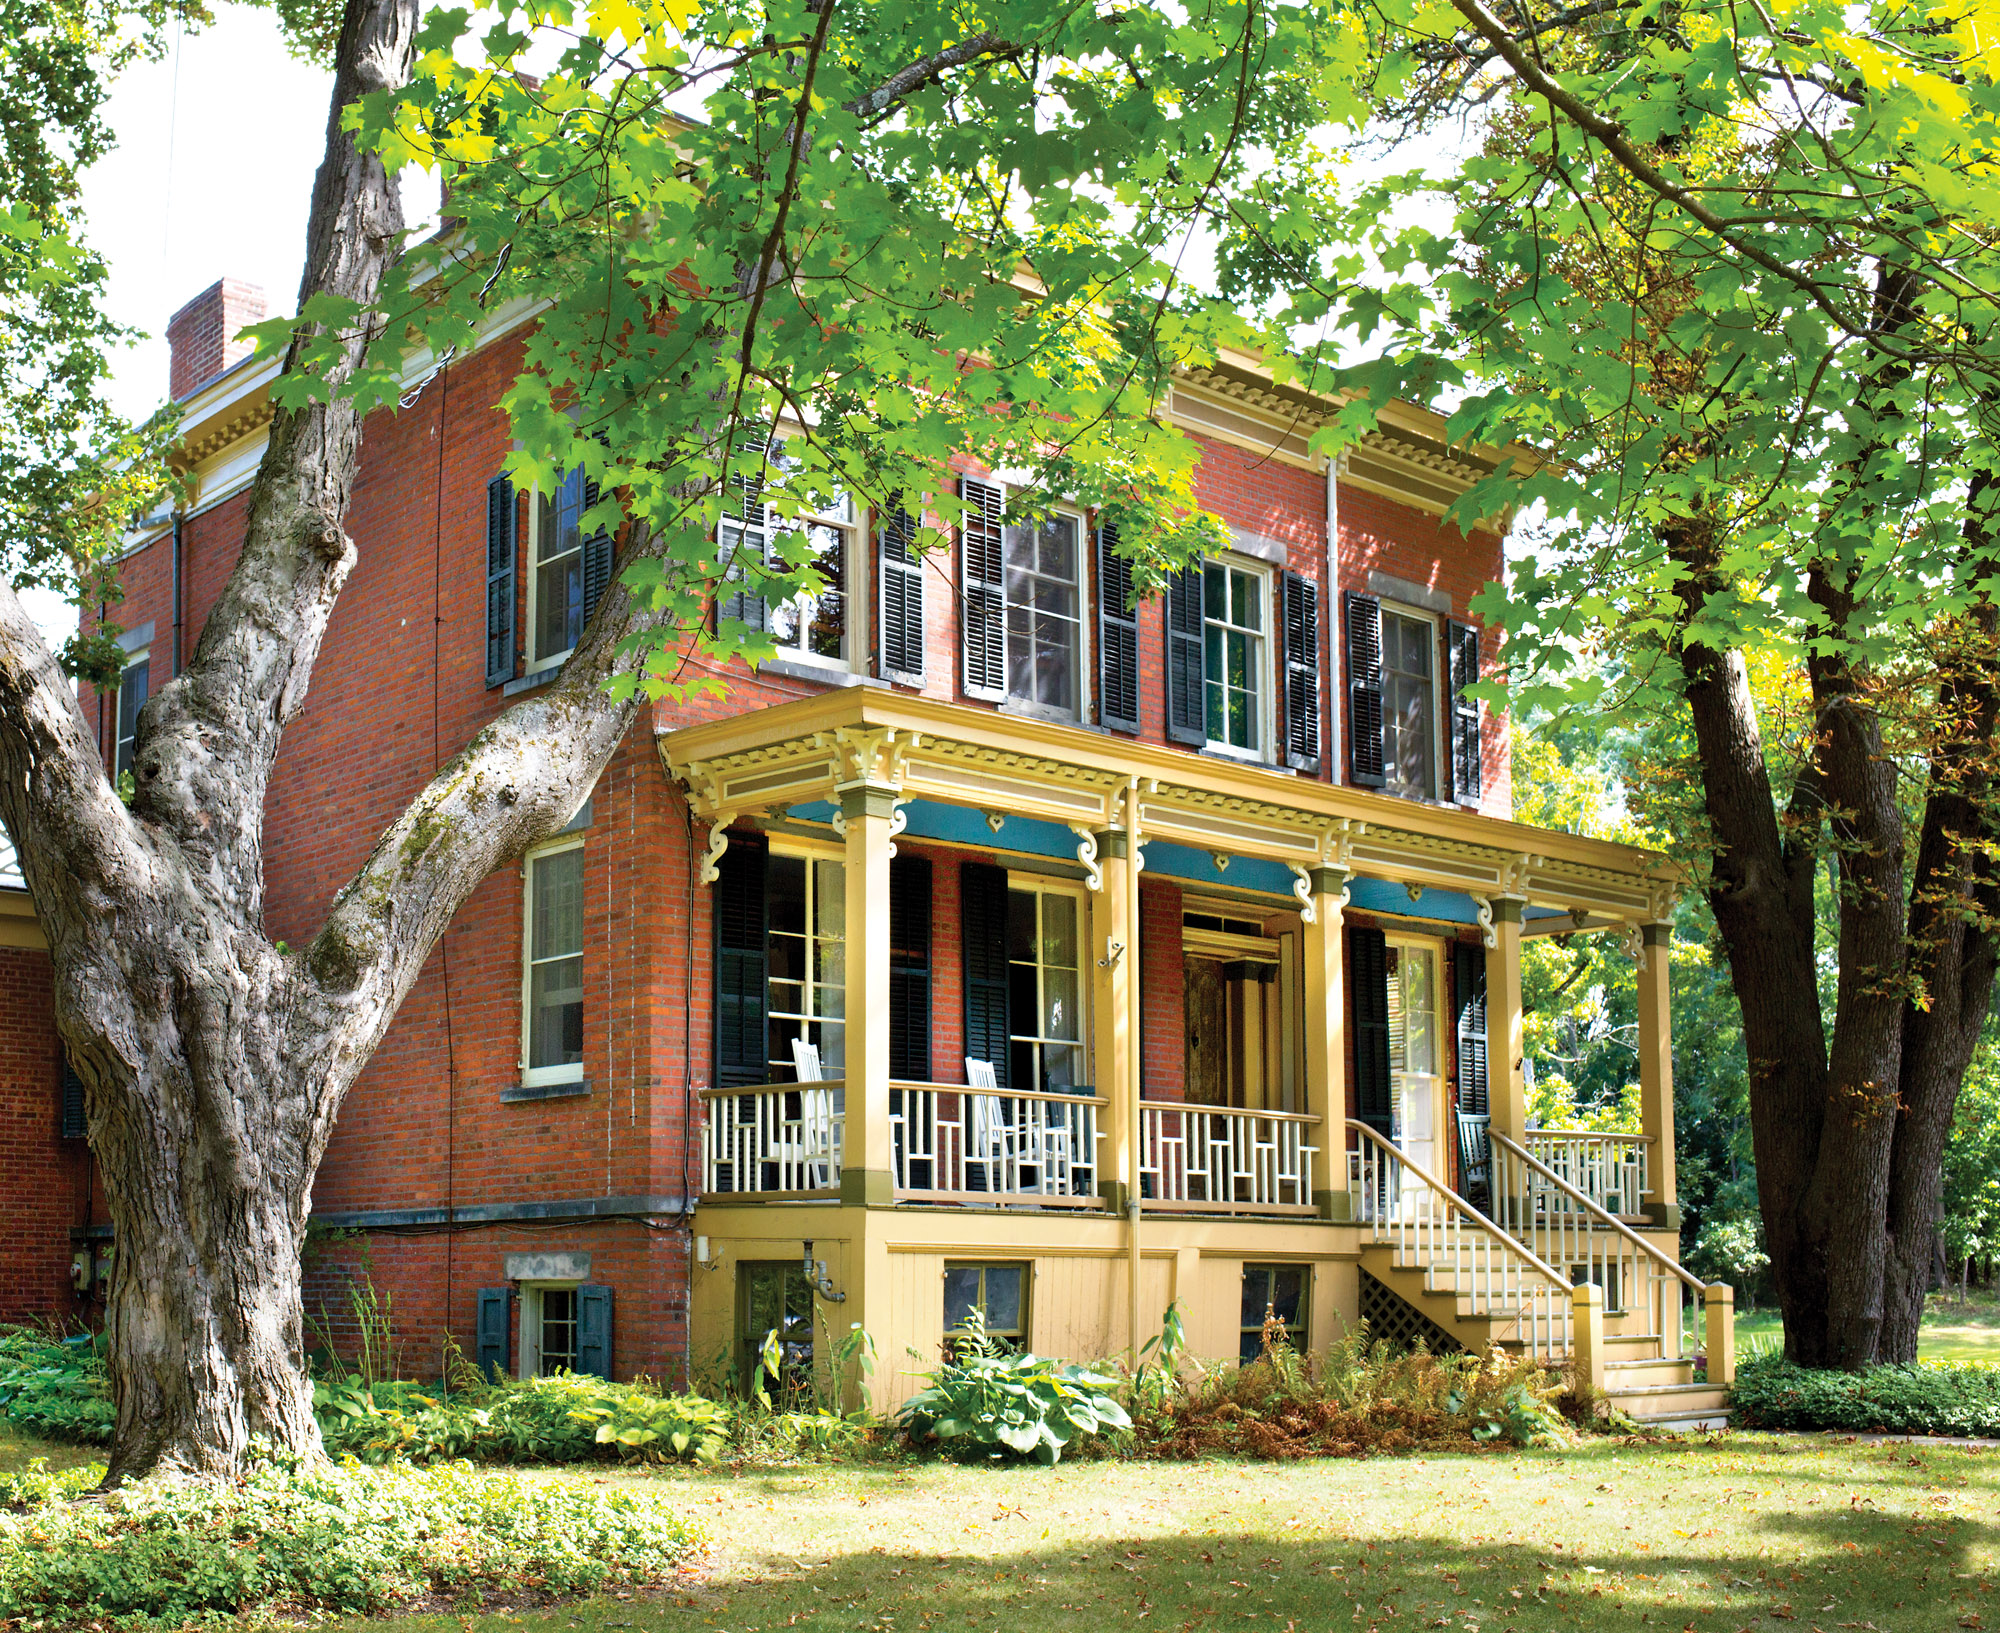 Schoolfield: An Eccentric Italianate House